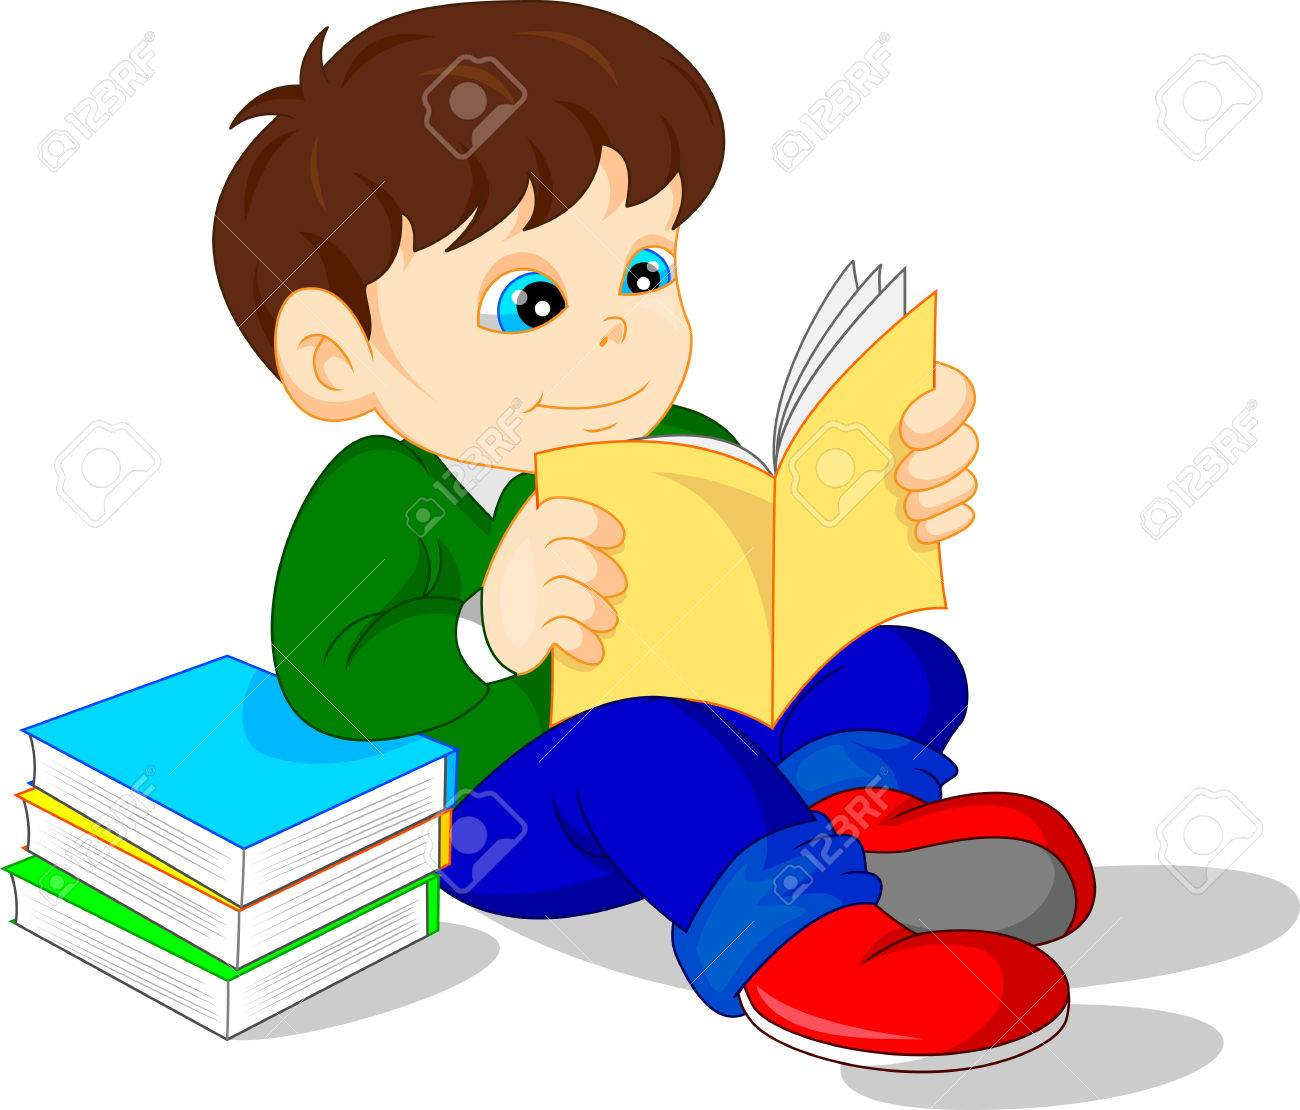 cute boy reading books royalty free cliparts, vectors, and stock